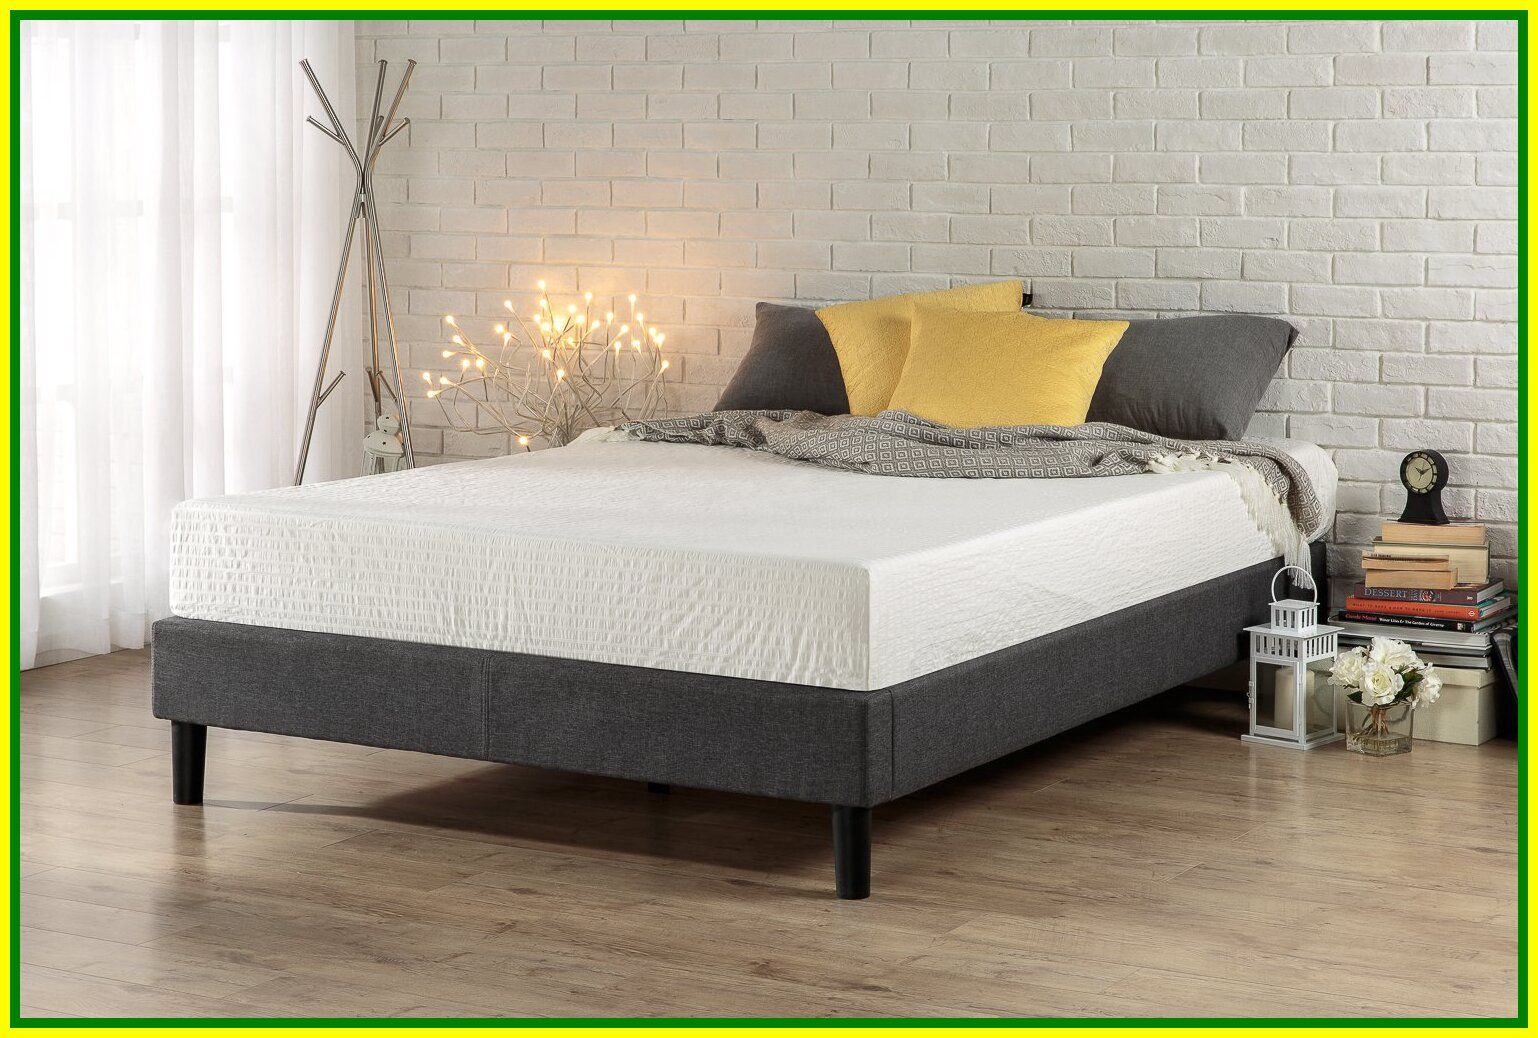 100 reference of mattress firm metal platform bed frame in